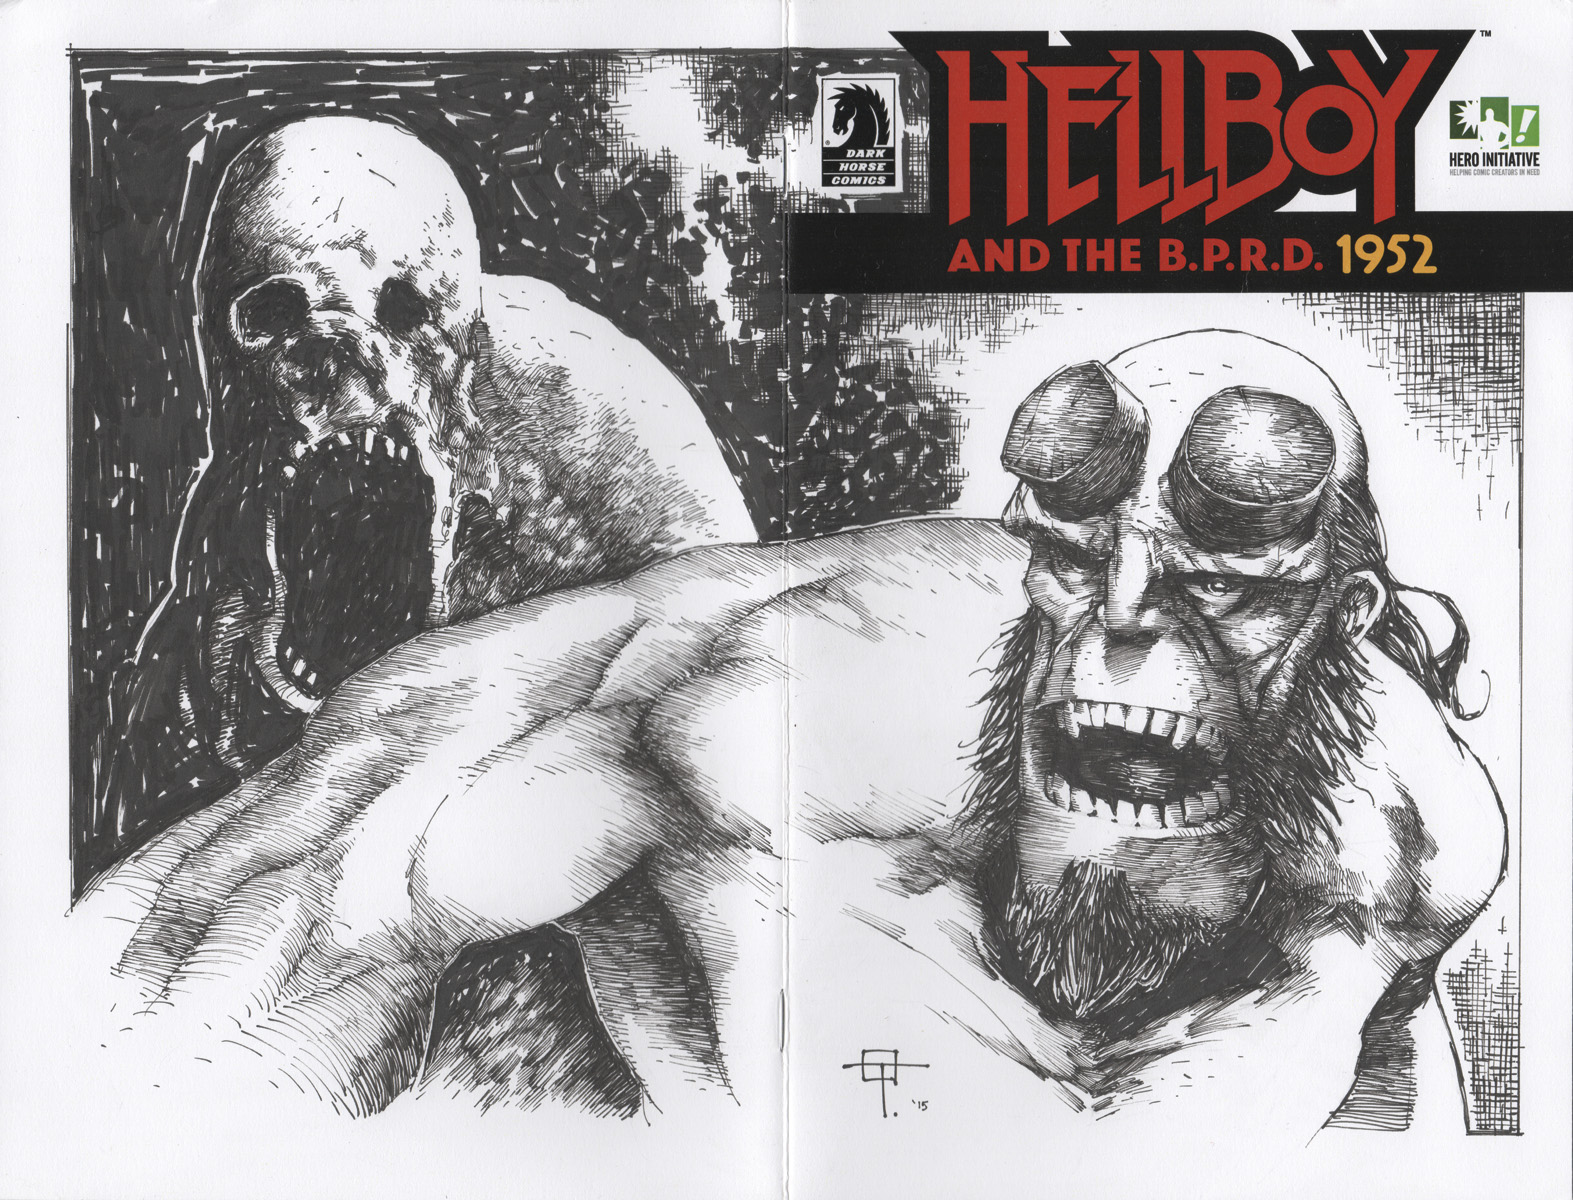 Exclusive: Jeff Lemire and Ted McKeever Reveal Hellboy Covers for